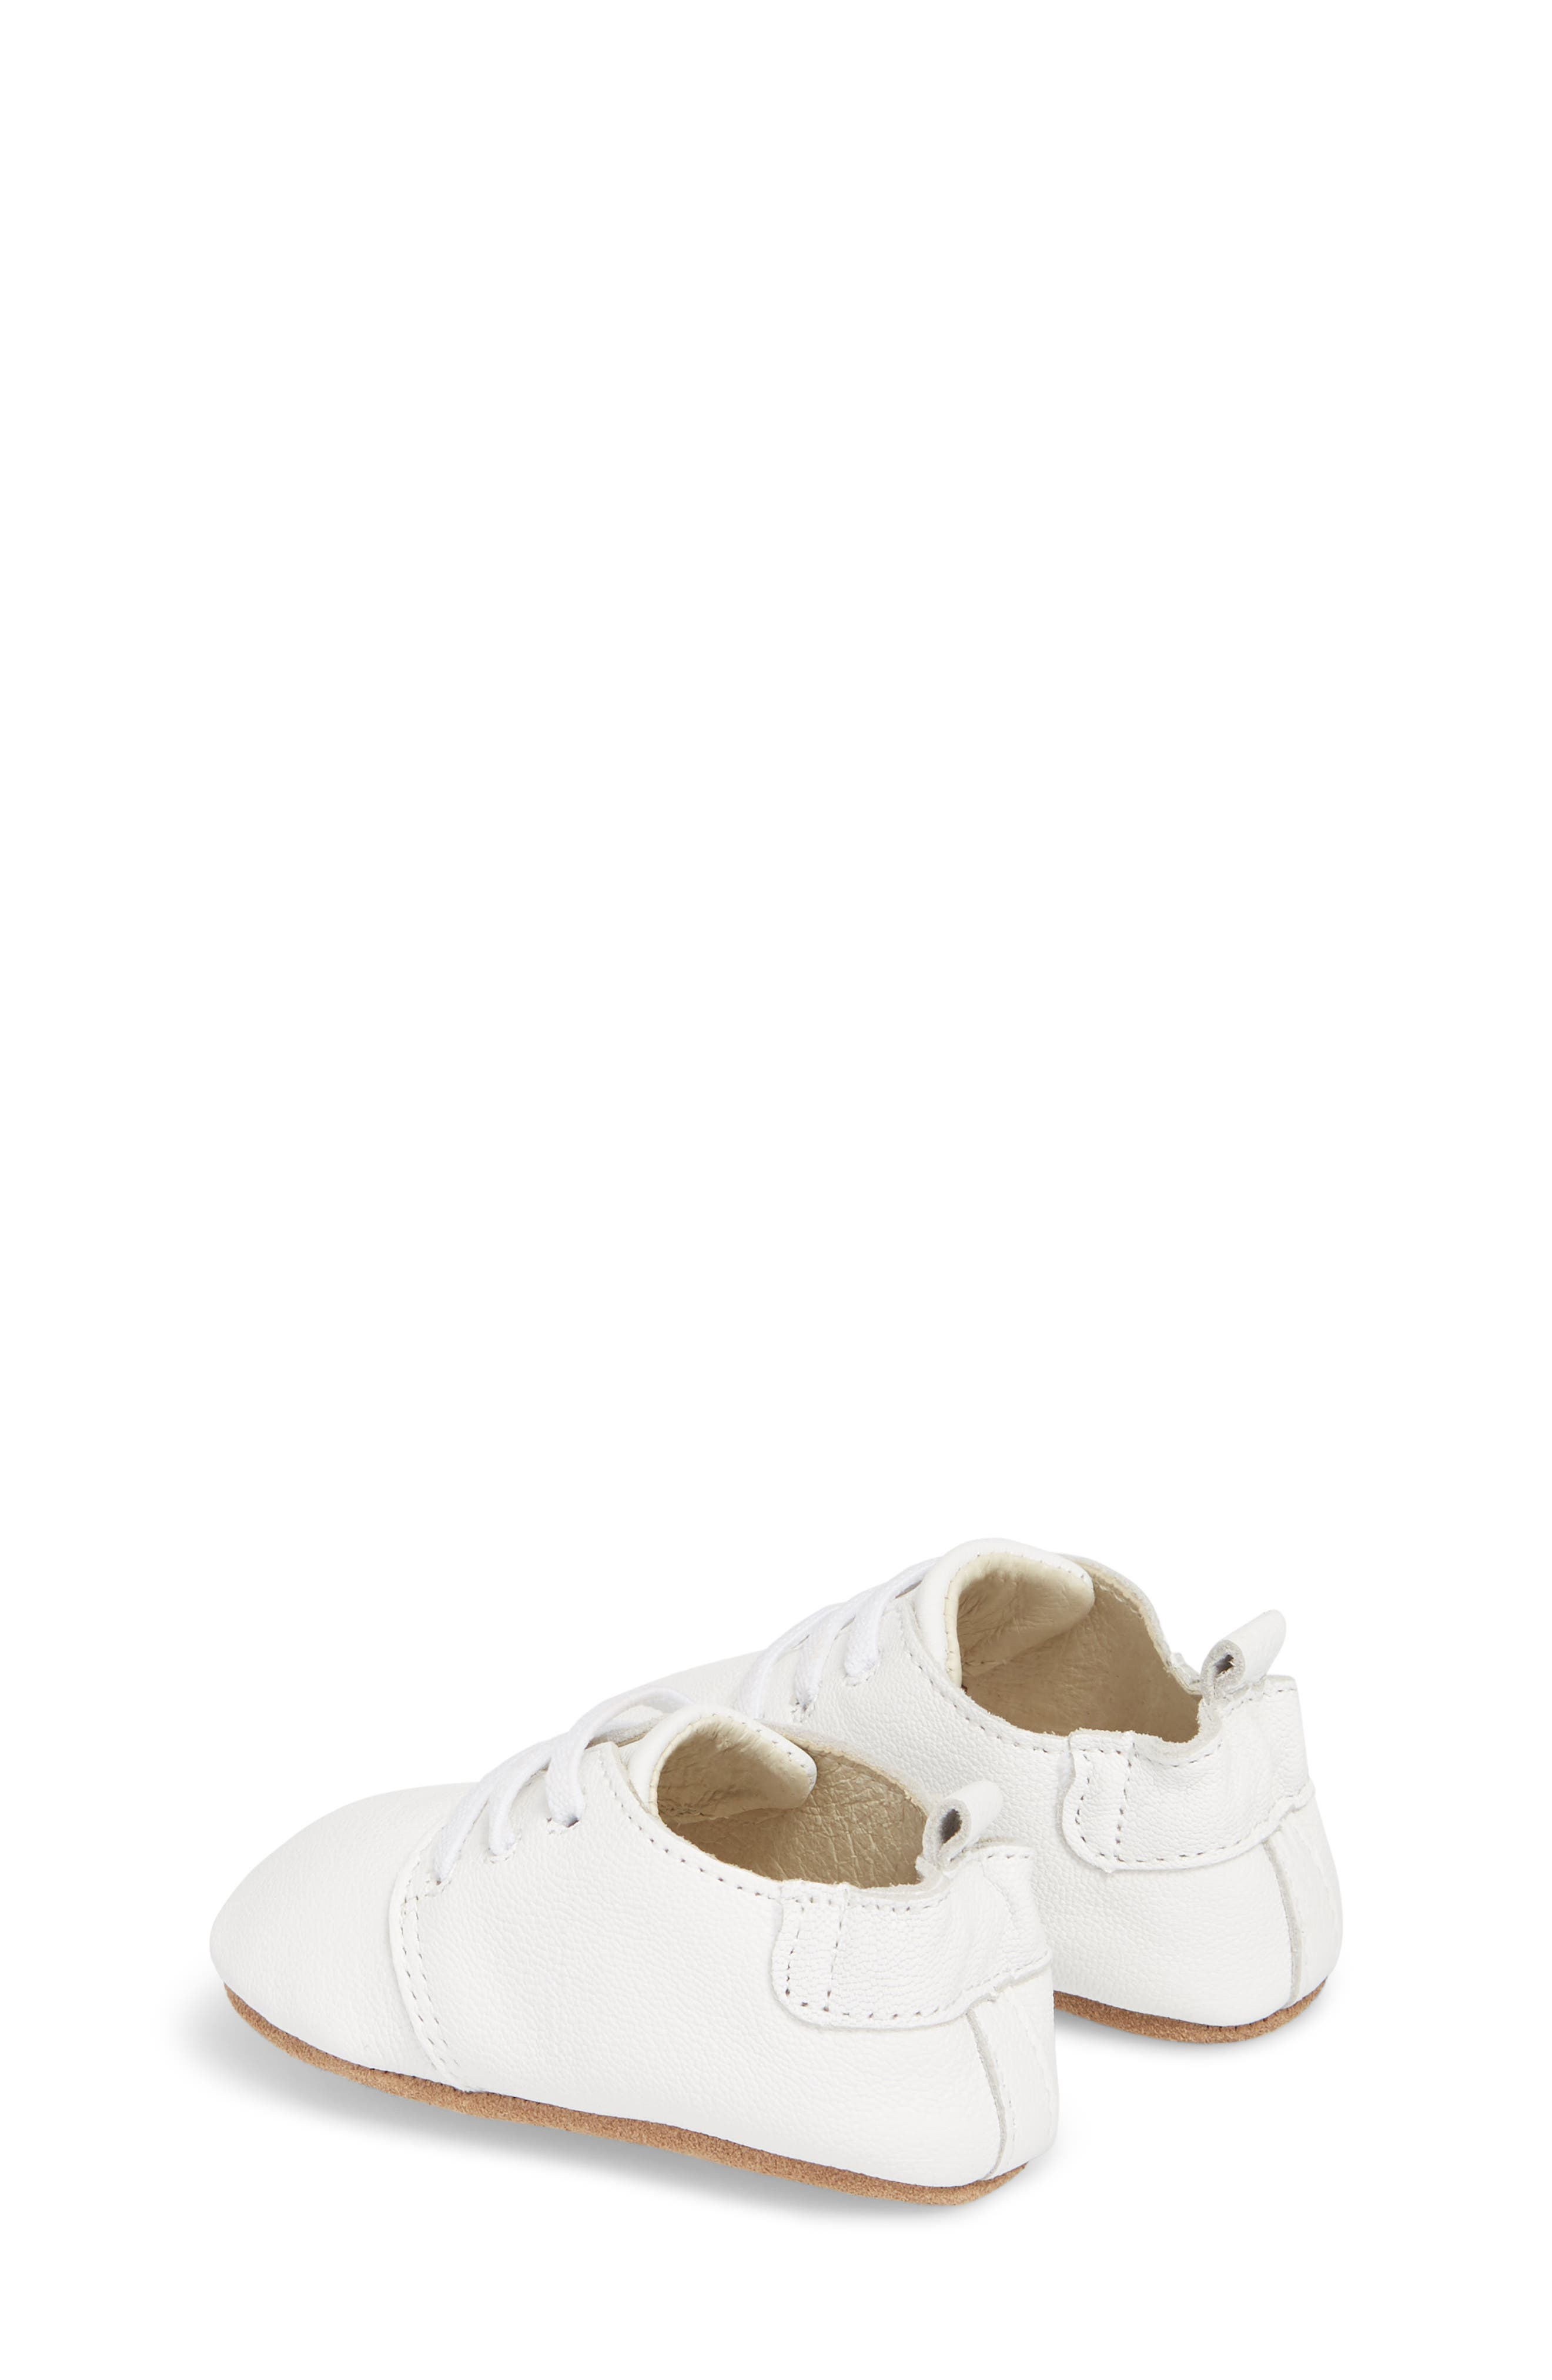 Owen Oxford Crib Shoe,                             Alternate thumbnail 2, color,                             White